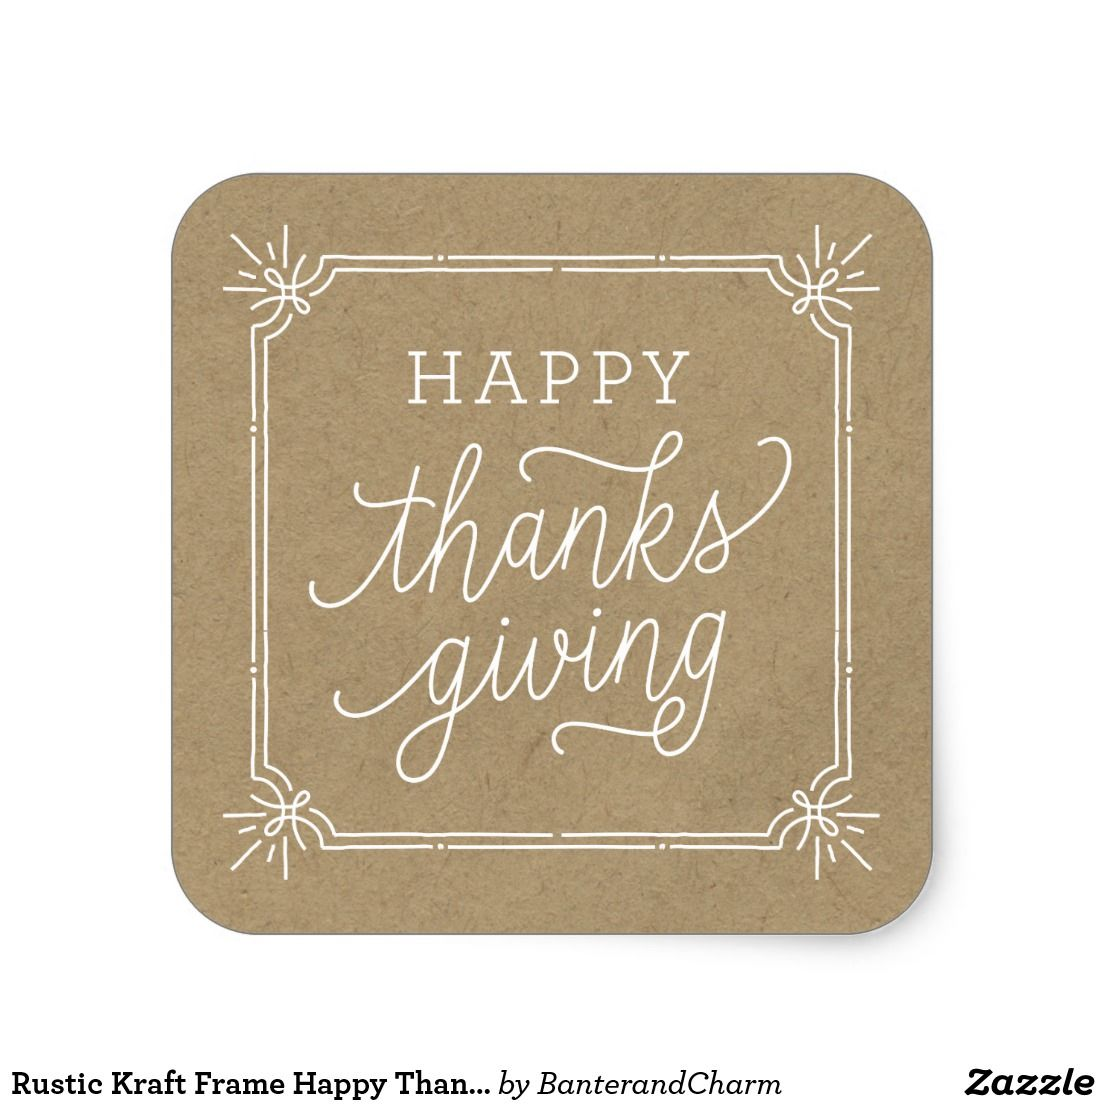 Rustic Kraft Frame Happy Thanksgiving Square Sticker Get In The Spirit With These Labels Featuring A Background And Hand Drawn